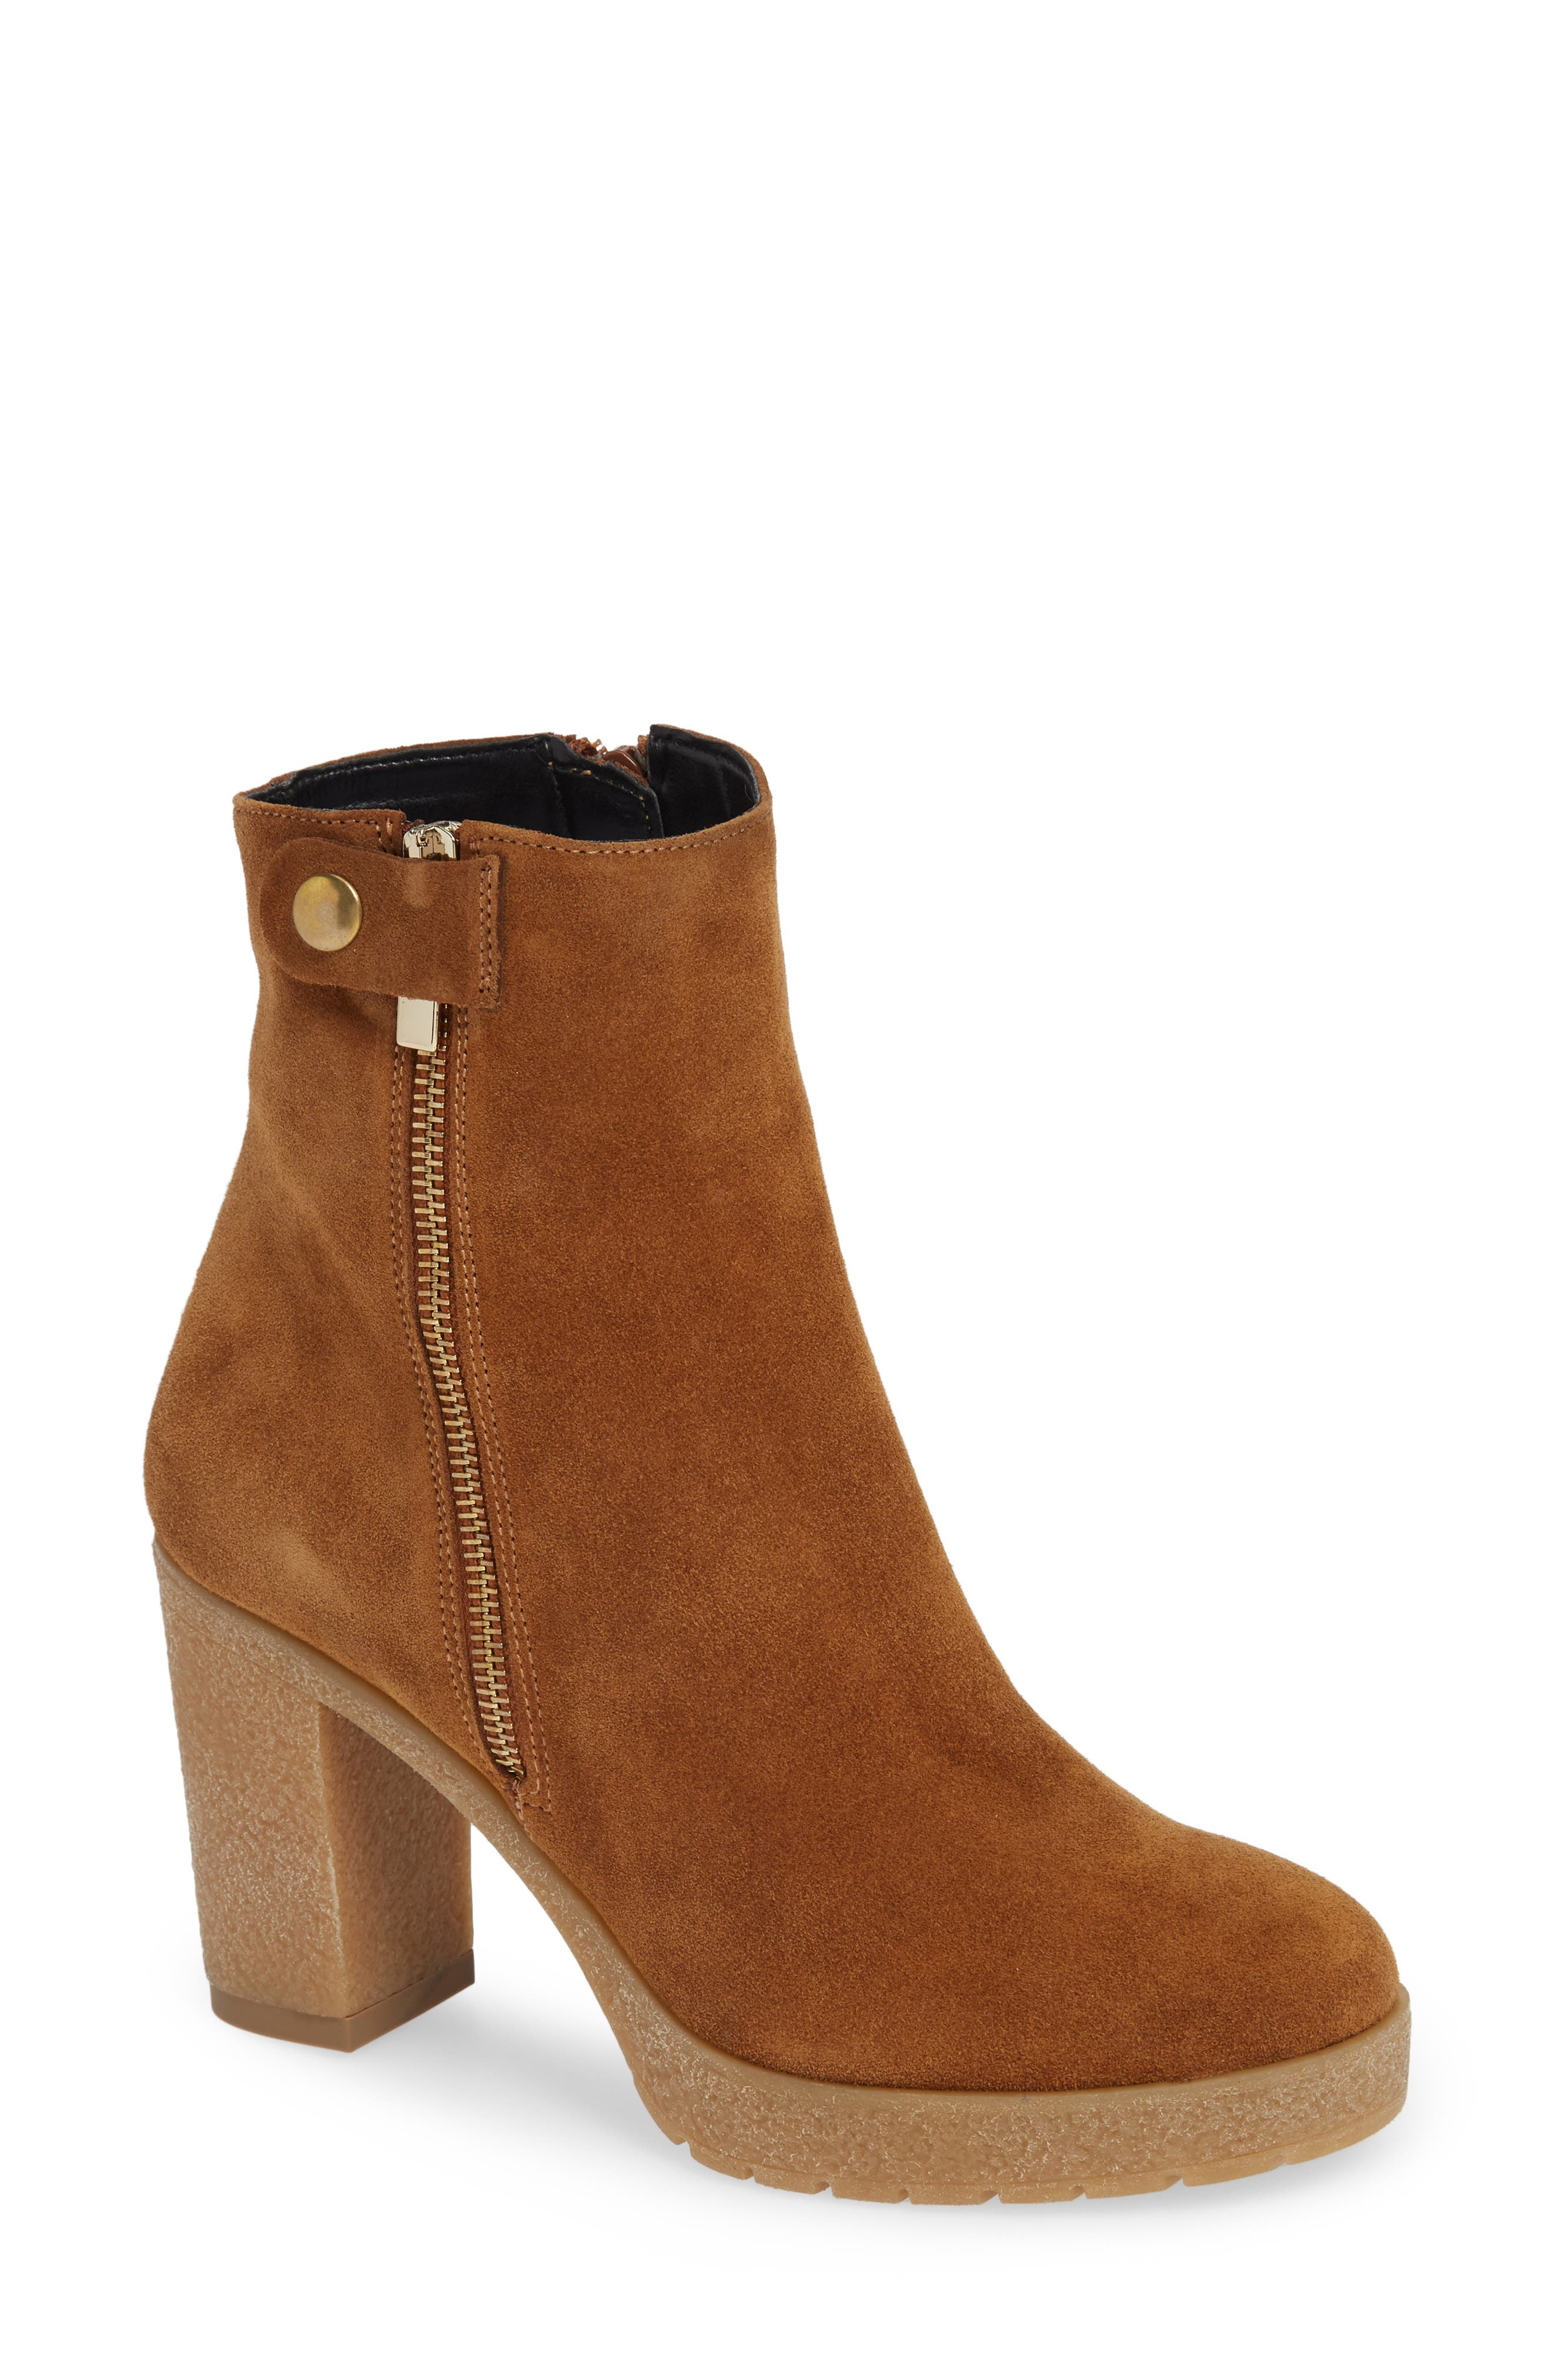 AMALFI BY RANGONI Lupetto Side Zip Bootie in Cognac Suede